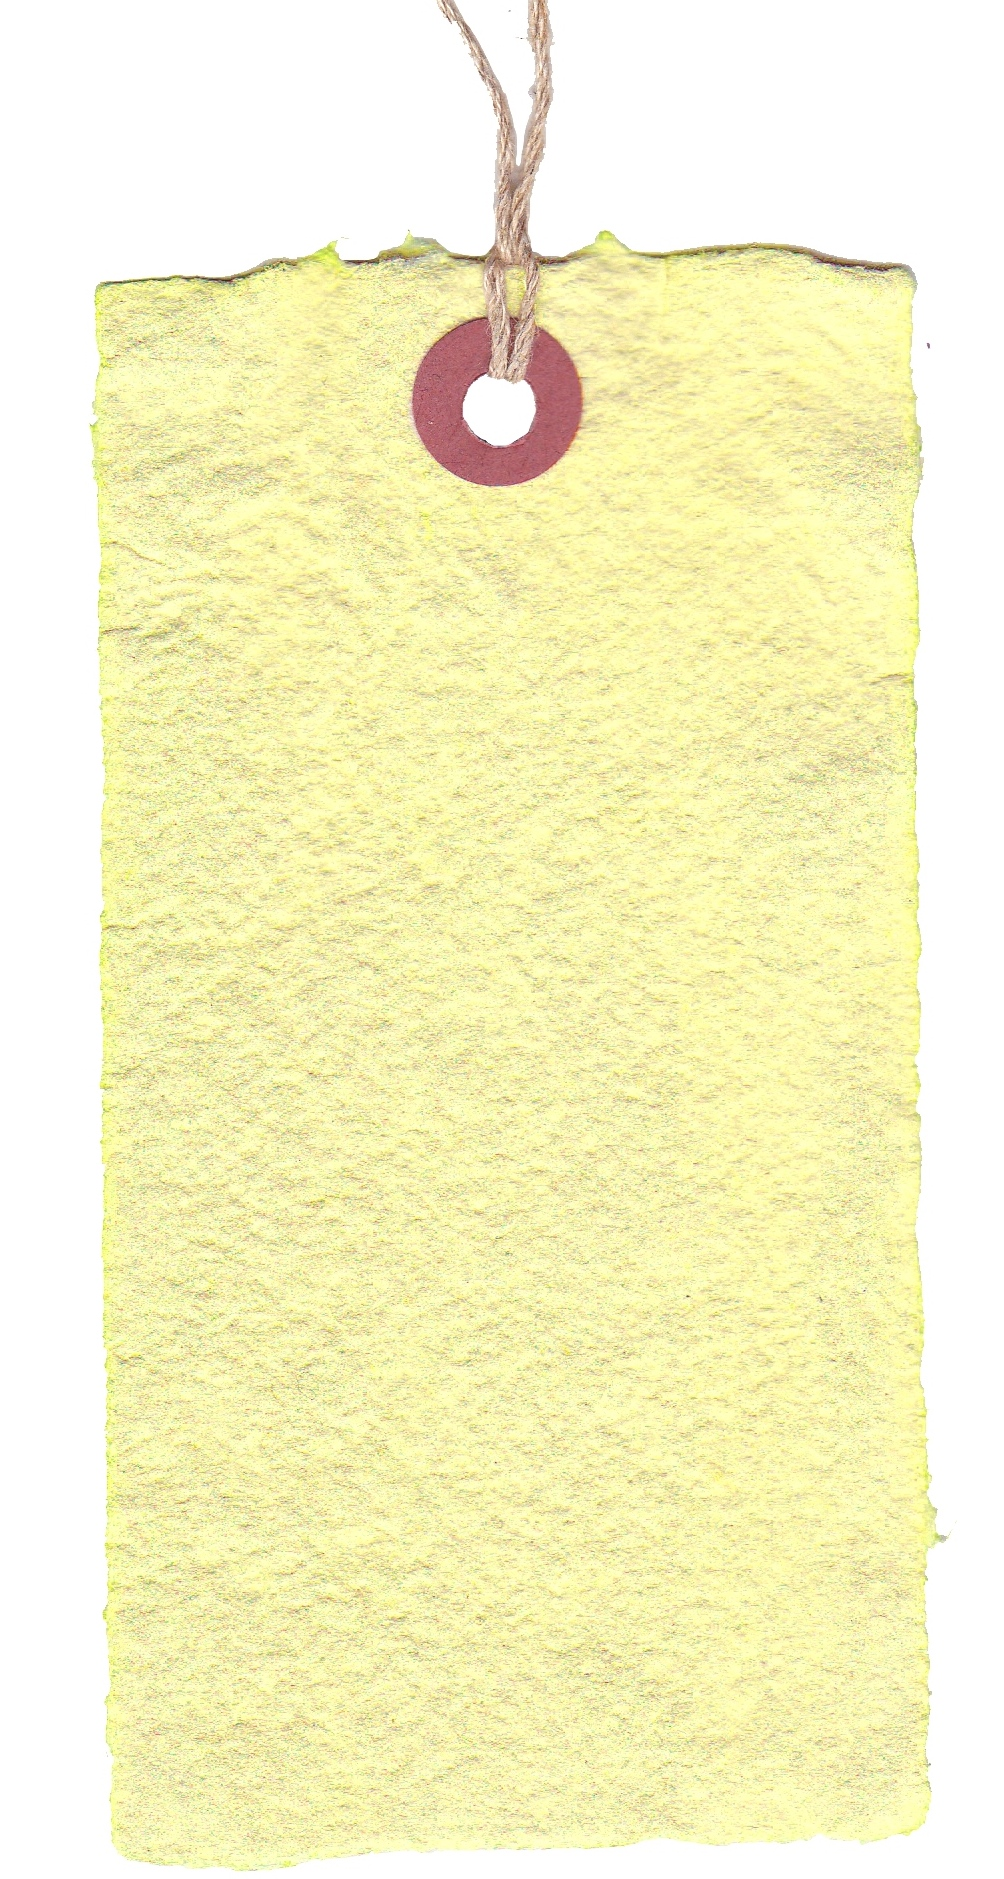 23030B - (5-1/4X2-5/8) HEMP PAPER TAG LEMON